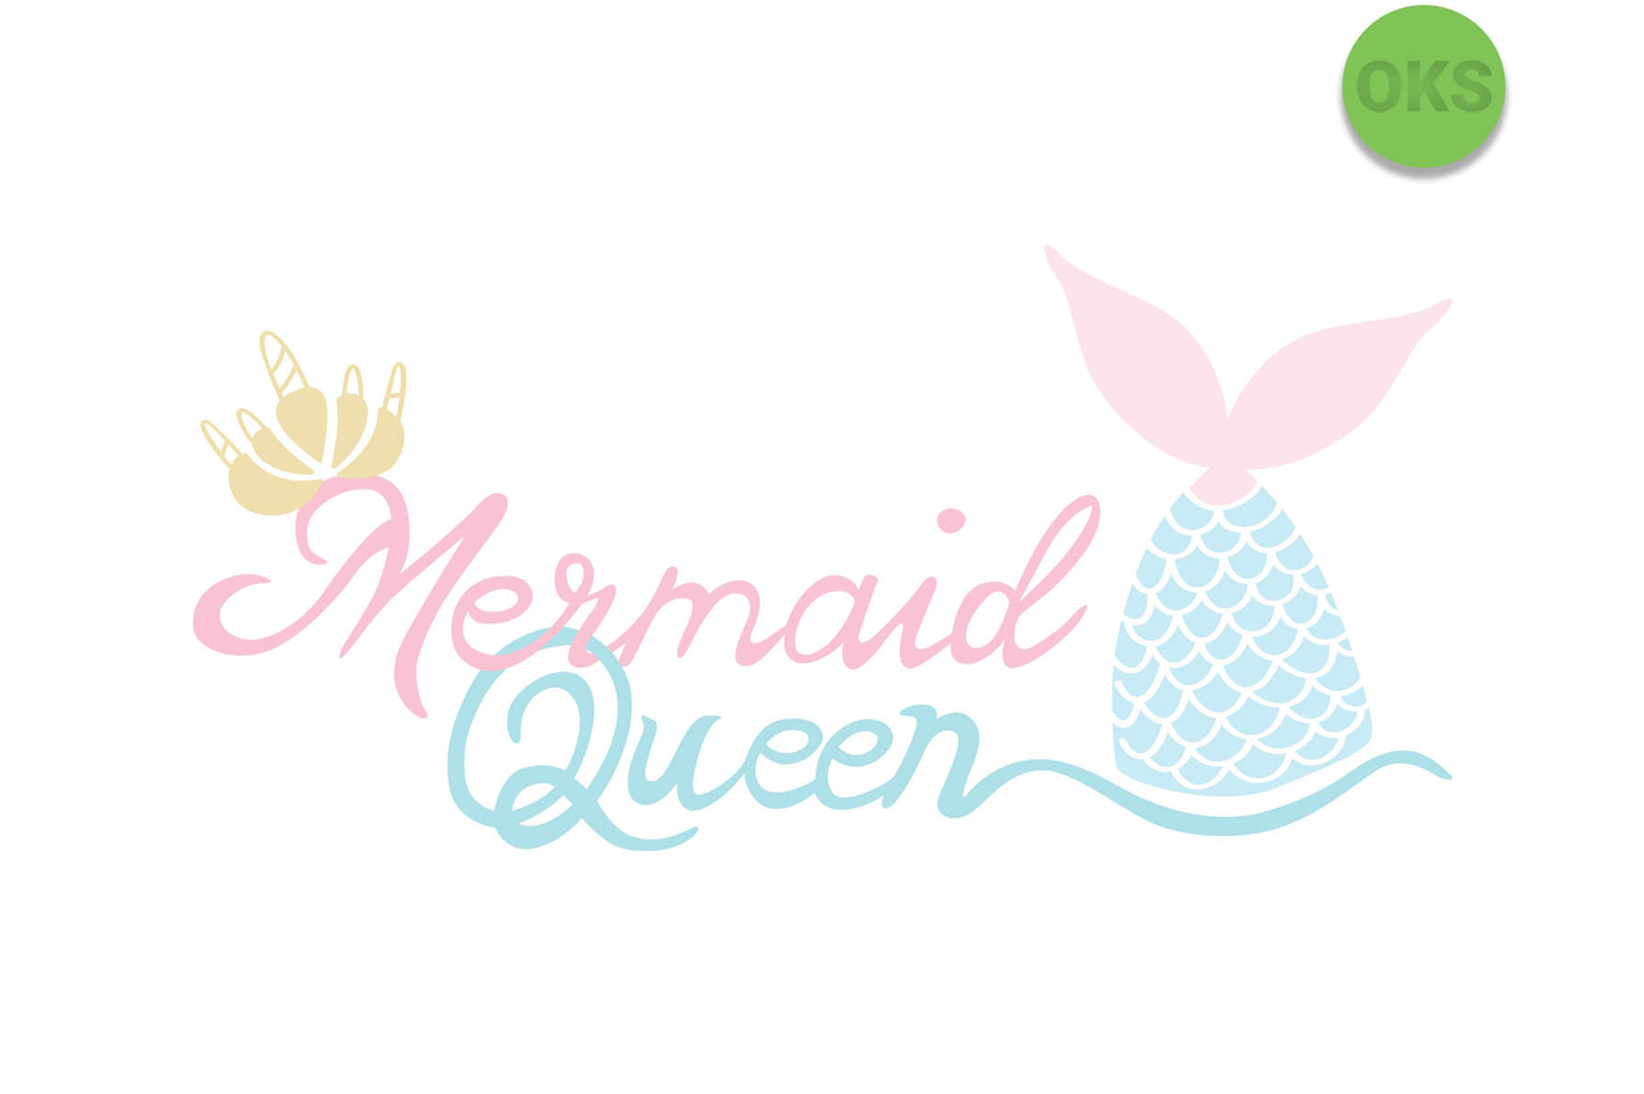 Download Free Mermaid Queen Vector Graphic By Crafteroks Creative Fabrica for Cricut Explore, Silhouette and other cutting machines.